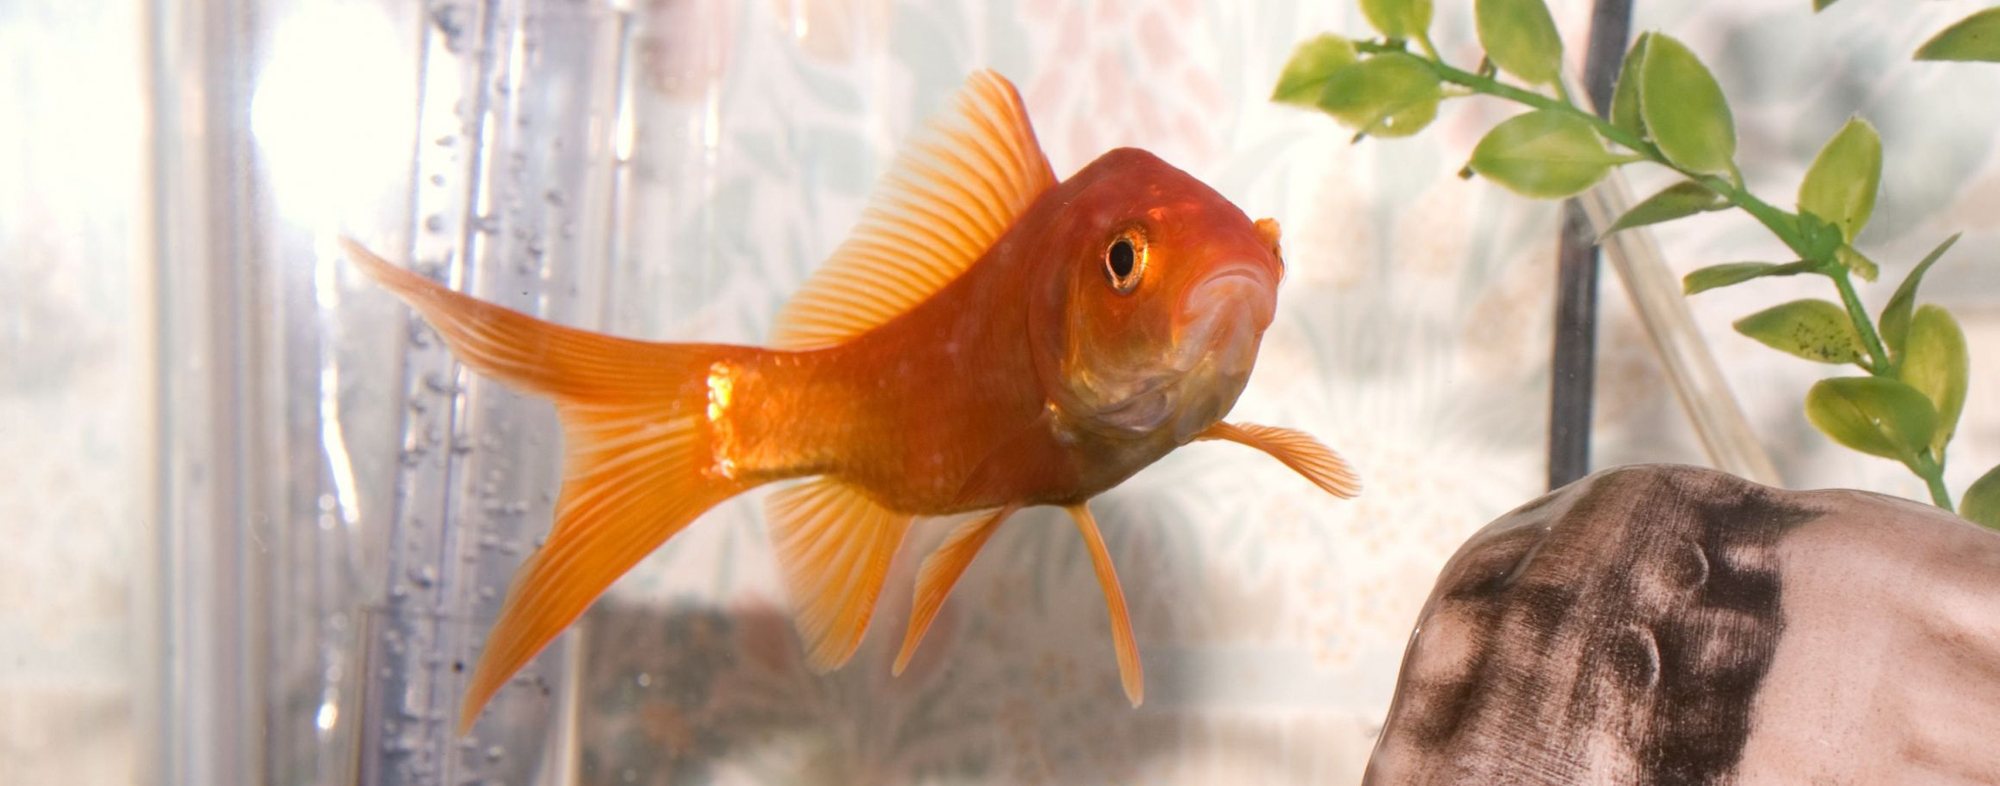 Small orange fish swimming in a tank with an aquarium filtration system